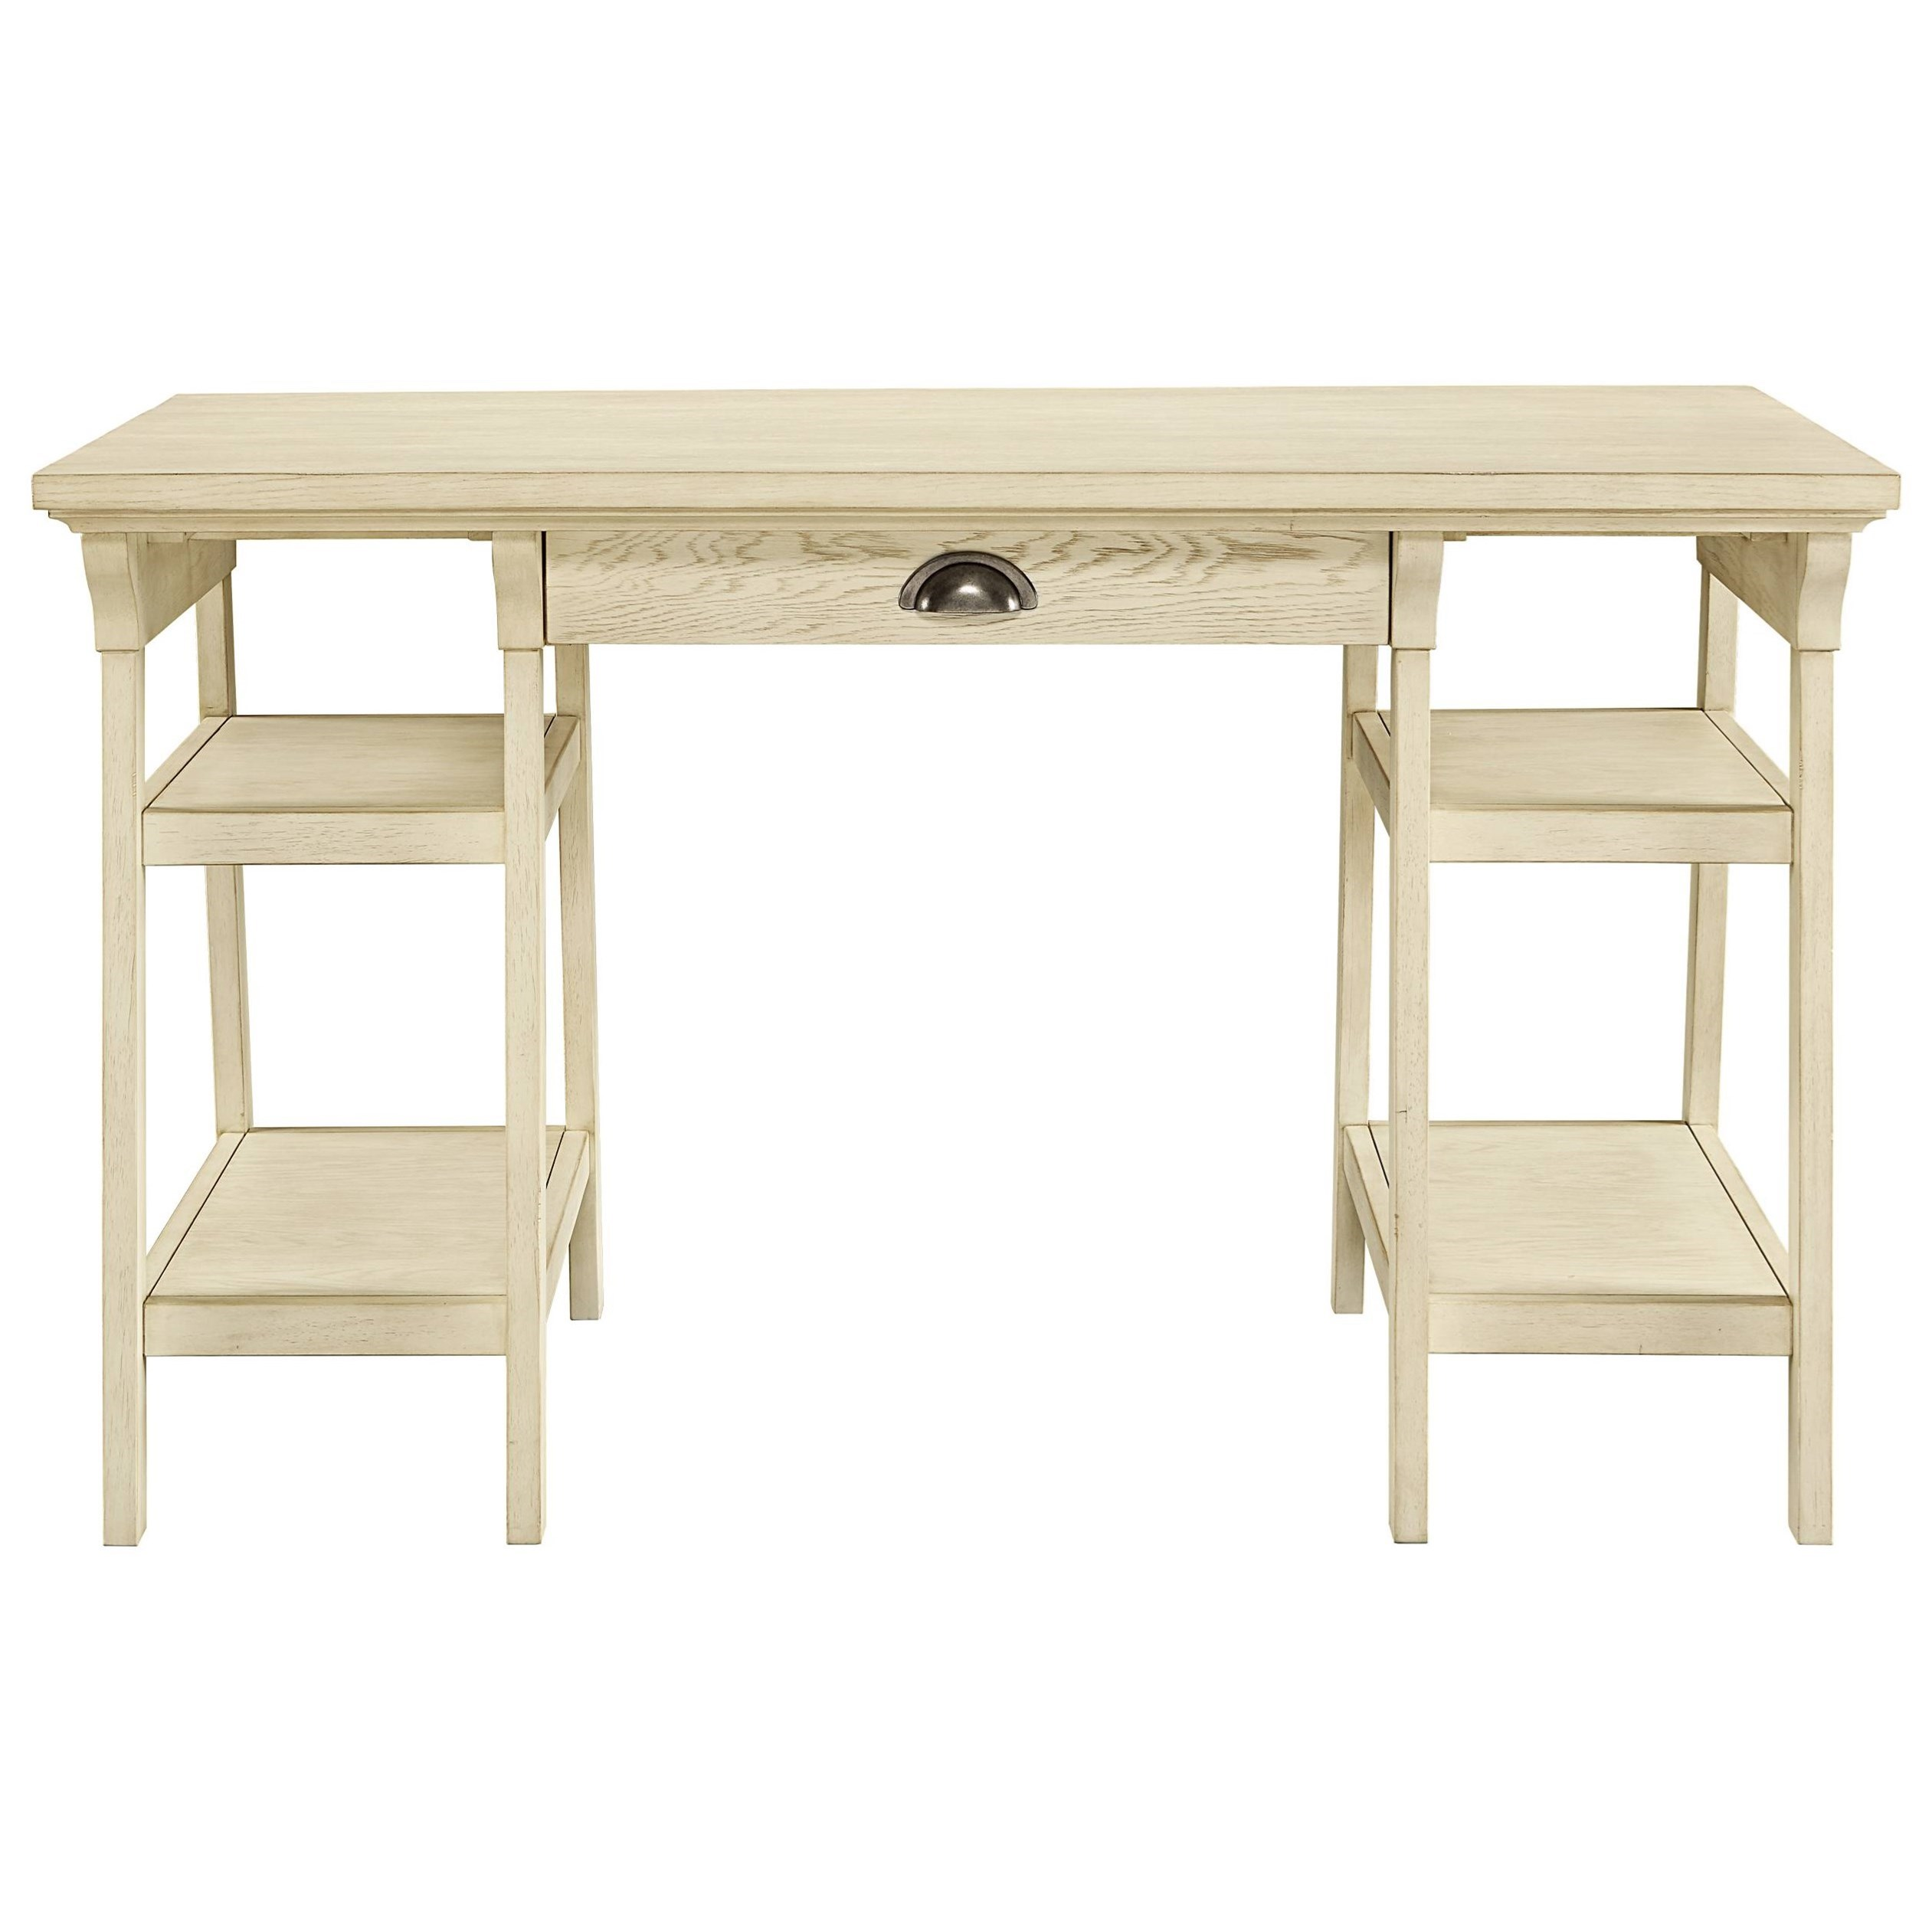 Stone & Leigh Furniture Driftwood Park Desk - Item Number: 536-23-27